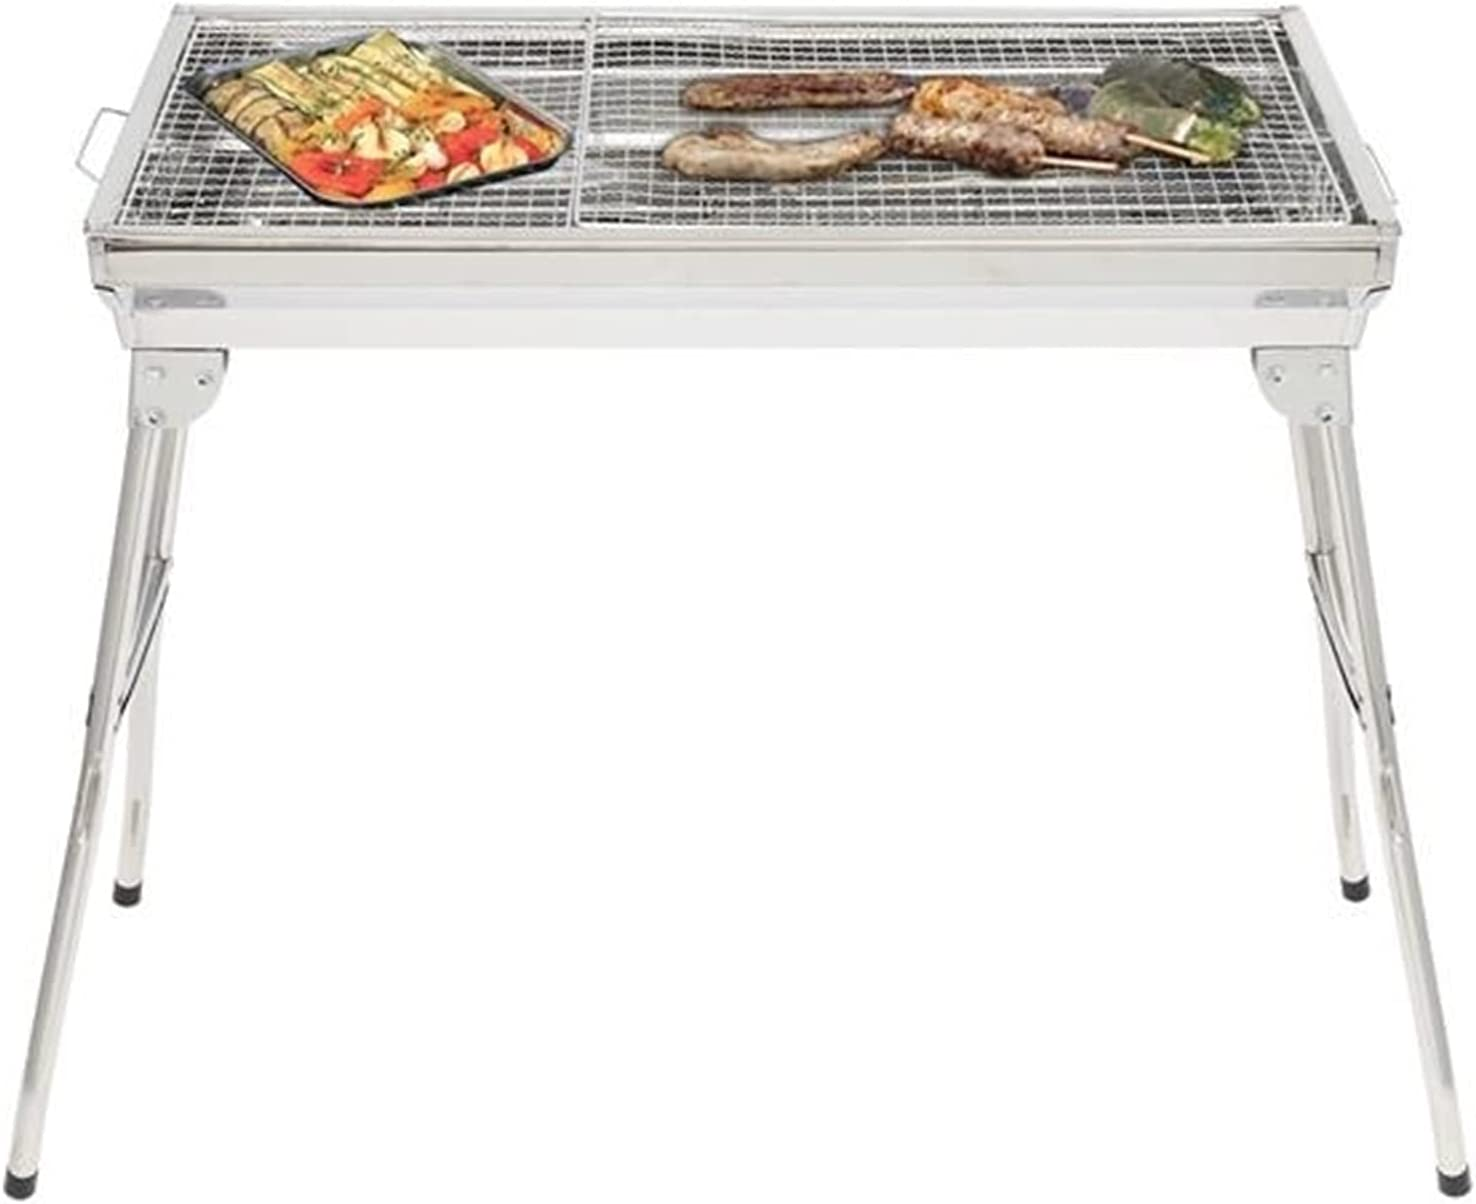 ZSY Camping Grills Portable Stainless Steel 5 ☆ very popular 27.95 x 12.99 Max 71% OFF Grill